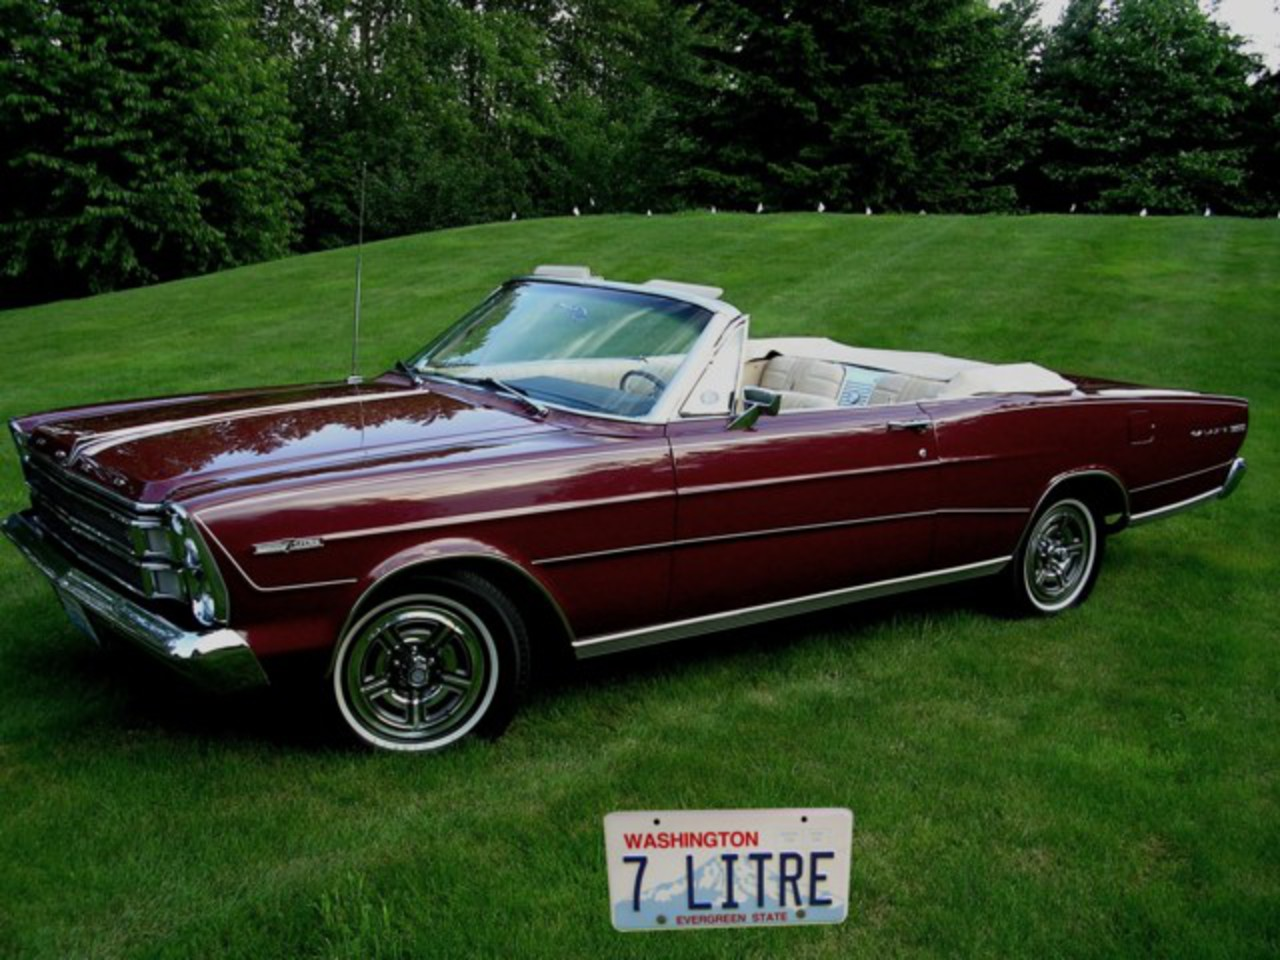 Topworldauto Photos Of Ford Galaxie 500 7 Litre Photo Galleries 66 Wiring Diagram Convertible